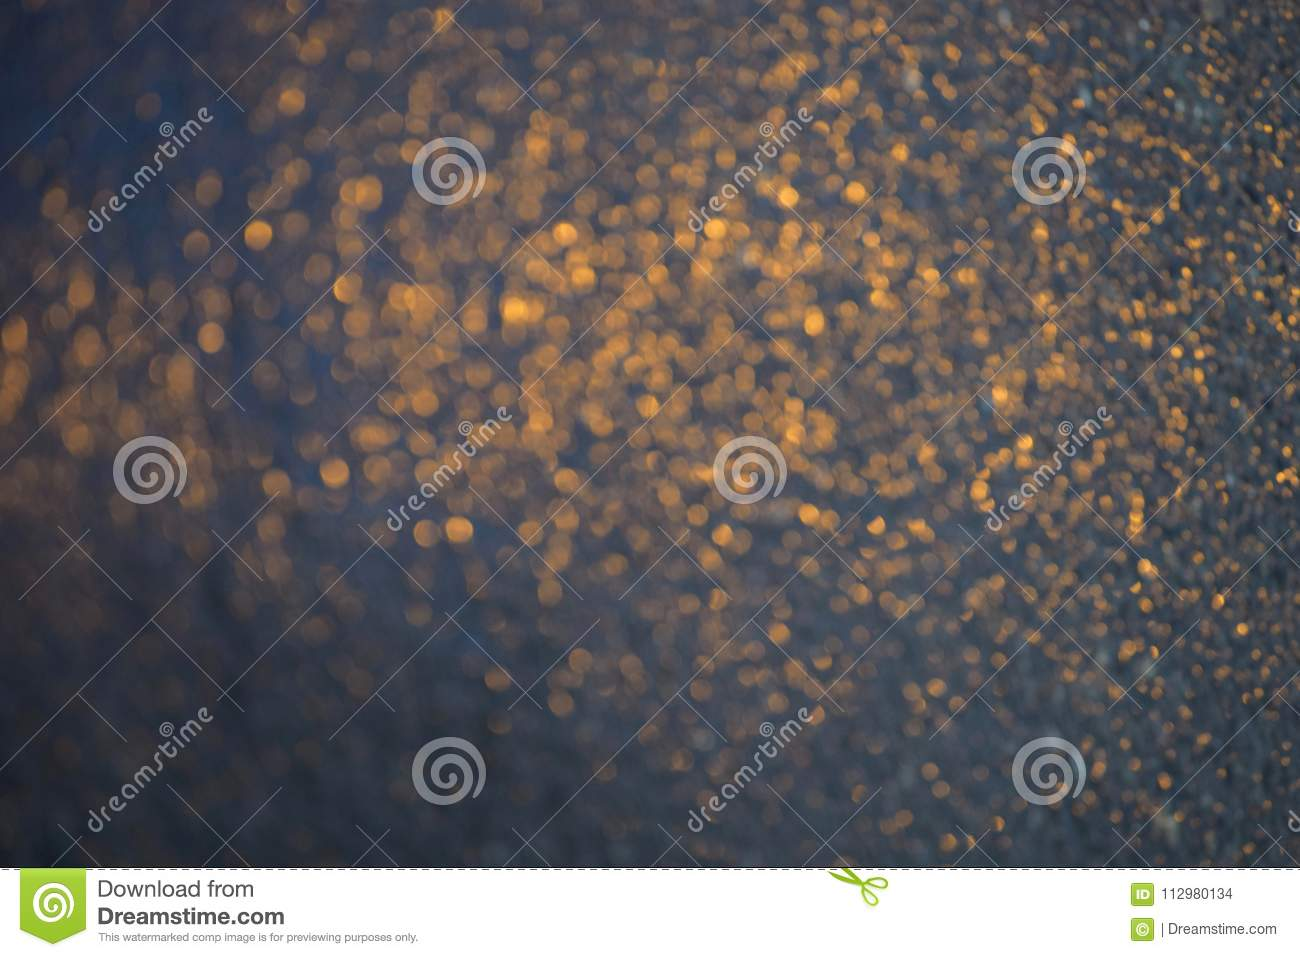 Blurred orange reflections on a blue background